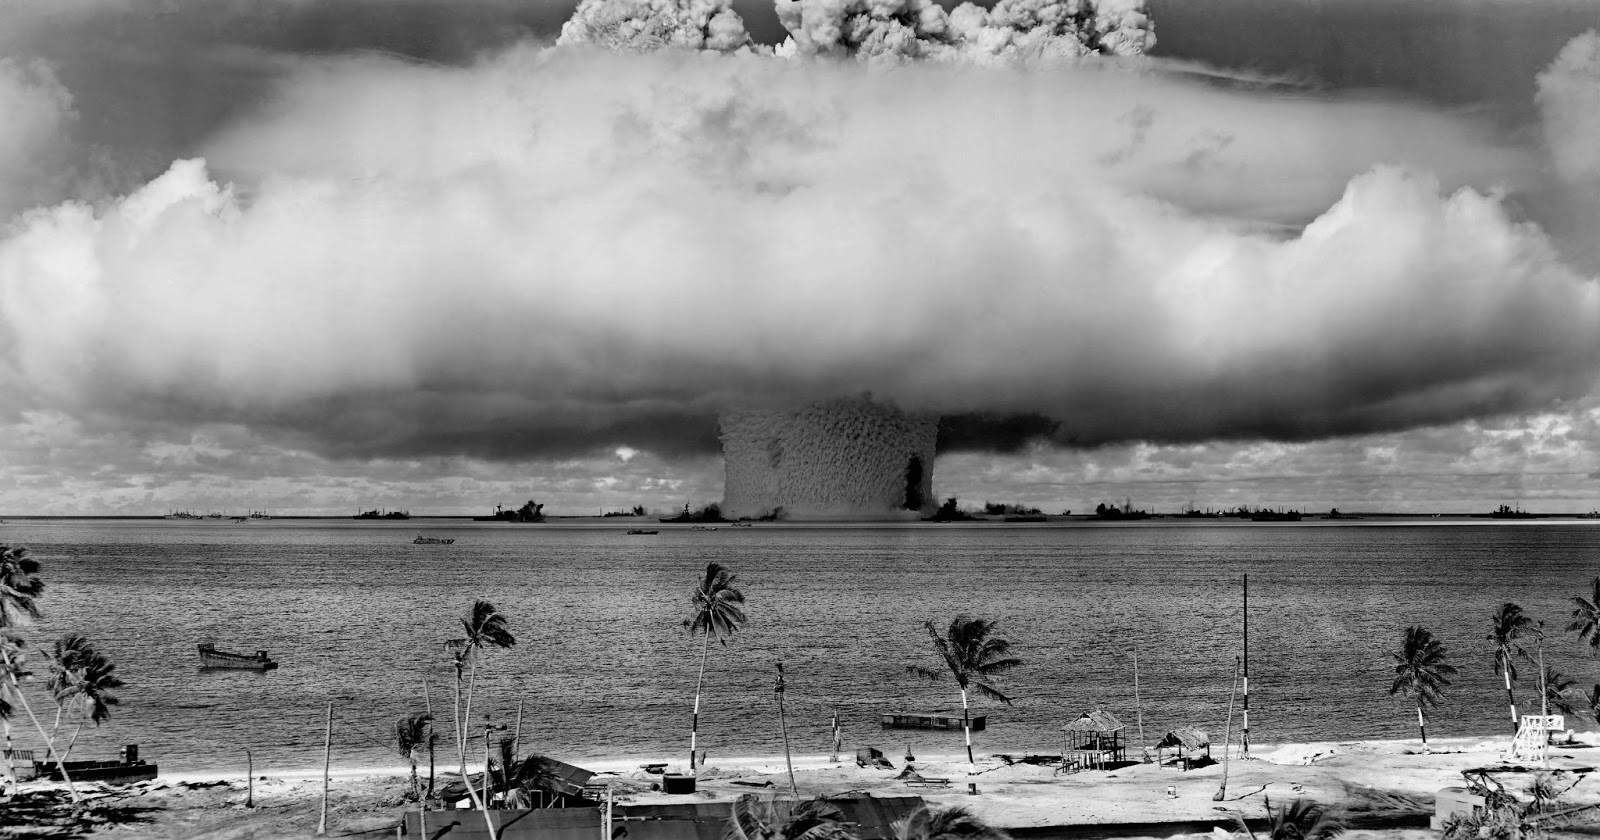 Underwater detonation of 24 kiloton nuclear weapon